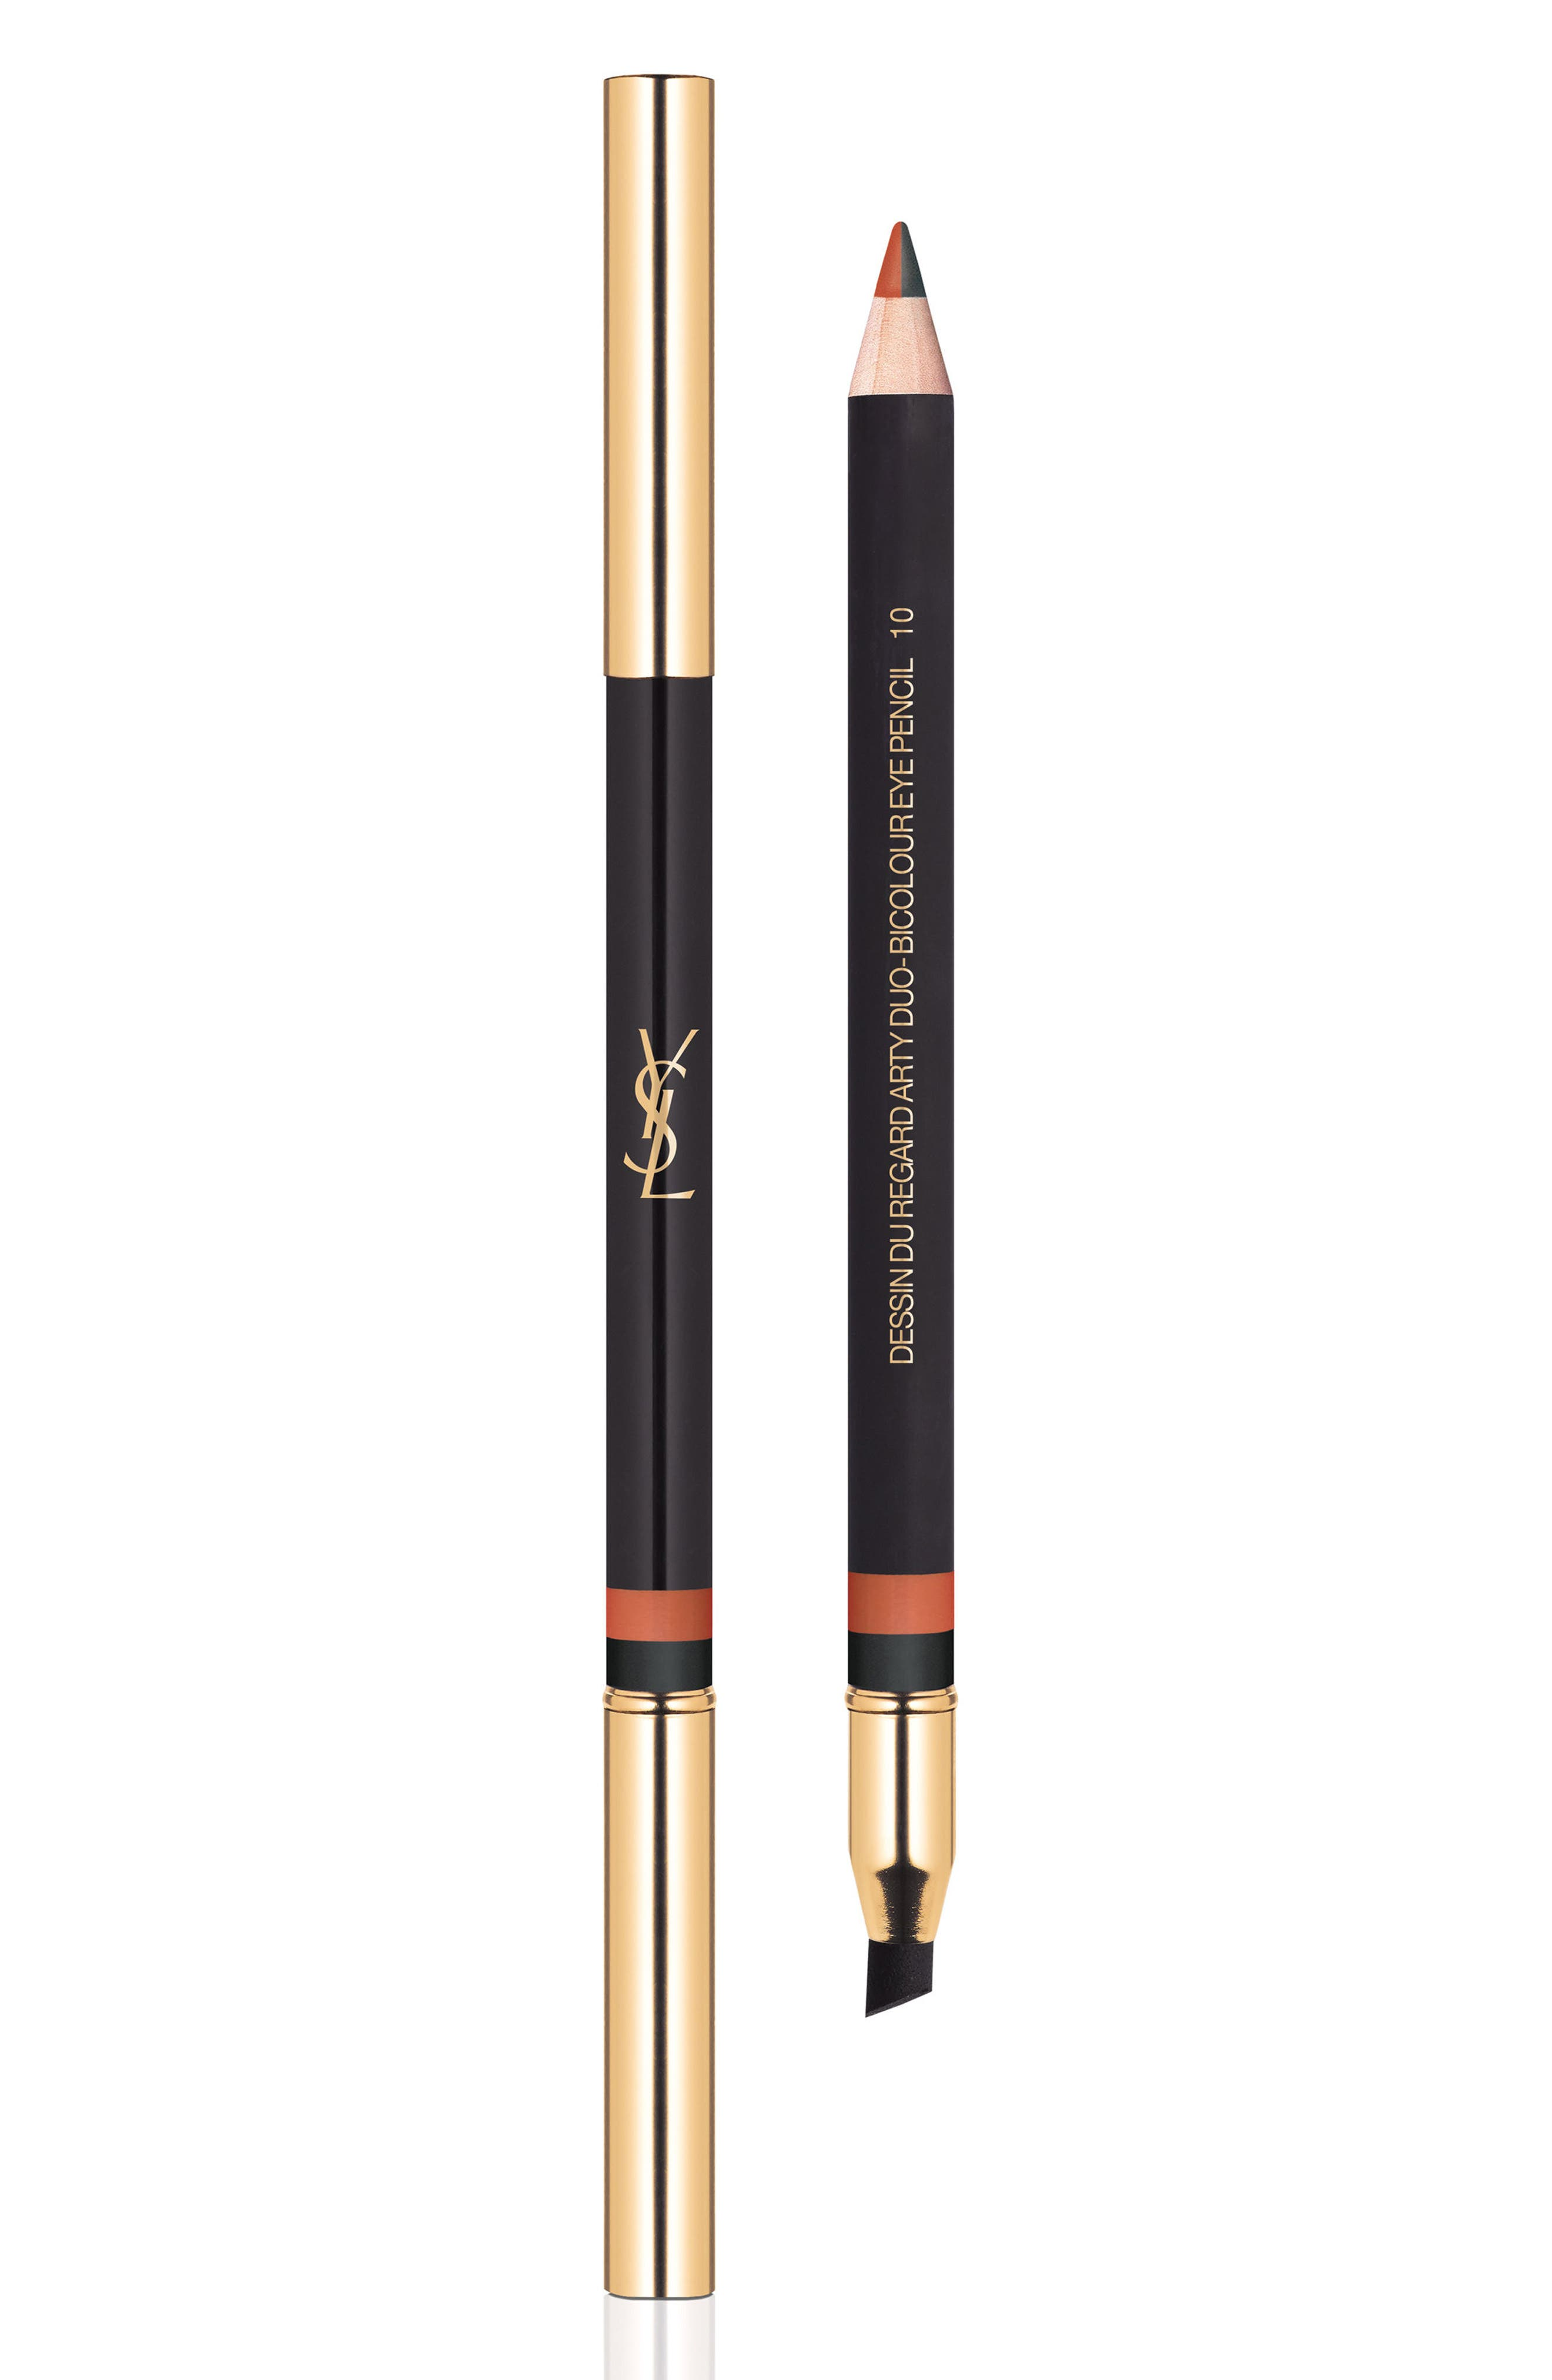 Yves Saint Laurent Dessin Du Regard Blanc Eye Pencil